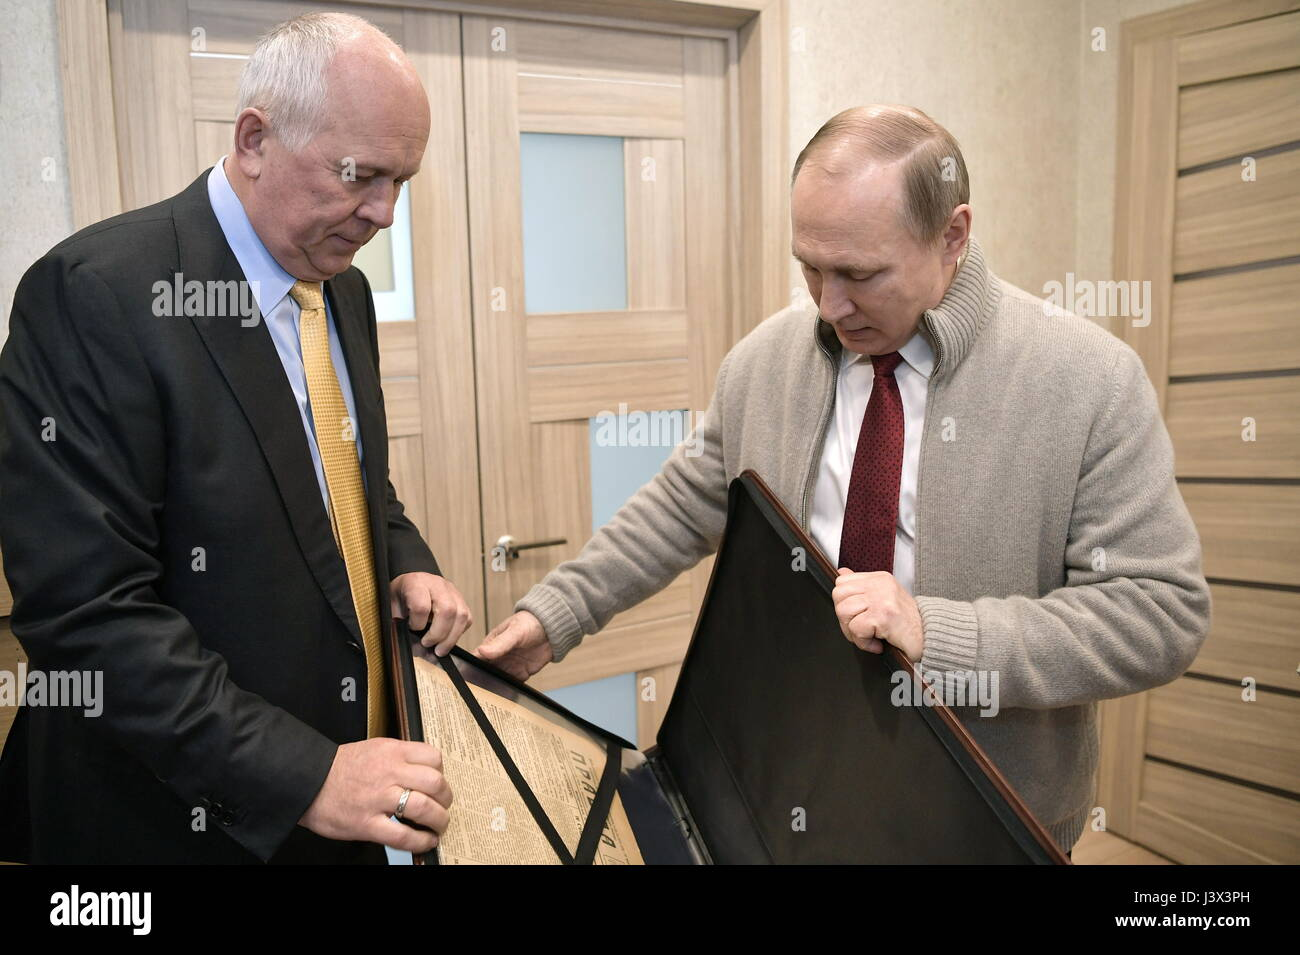 Moscow, Russia. 8th May, 2017. Rostec CEO Sergei Chemezov (L) and Russia's president Vladimir Putin with an - Stock Image